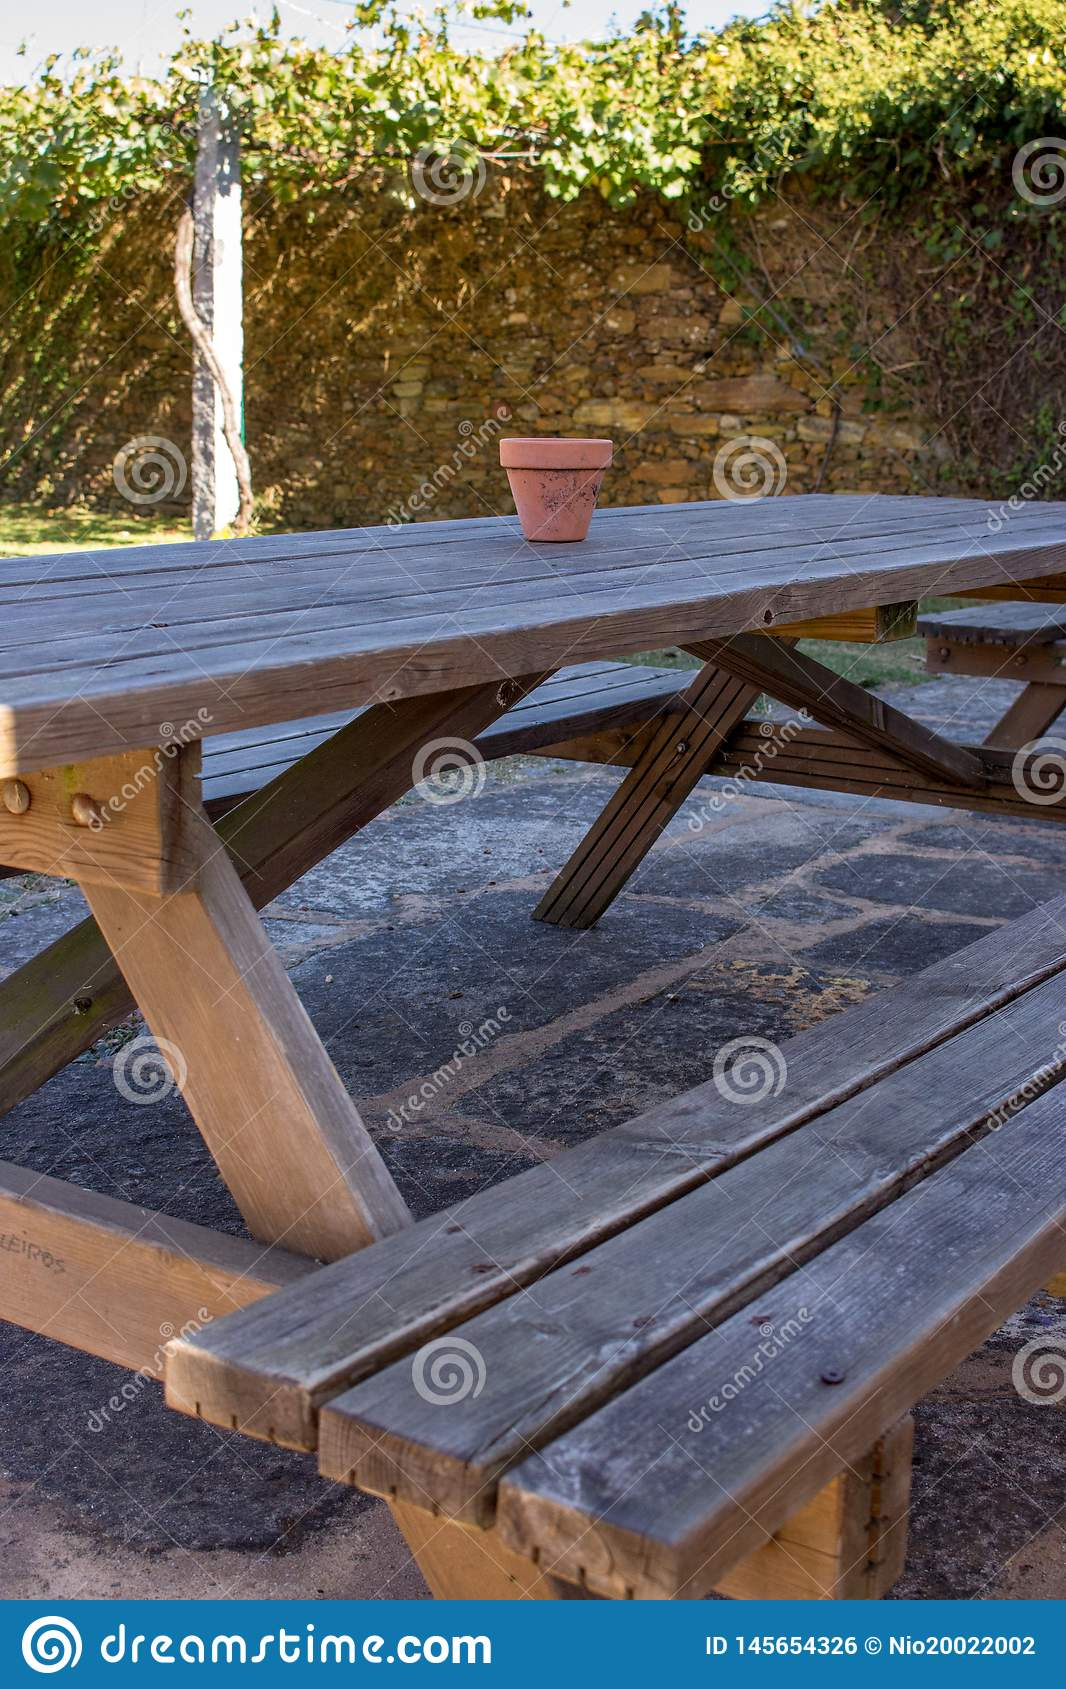 Surprising Wooden Bench And Table In Backyard Picnic Table With Pot In Caraccident5 Cool Chair Designs And Ideas Caraccident5Info